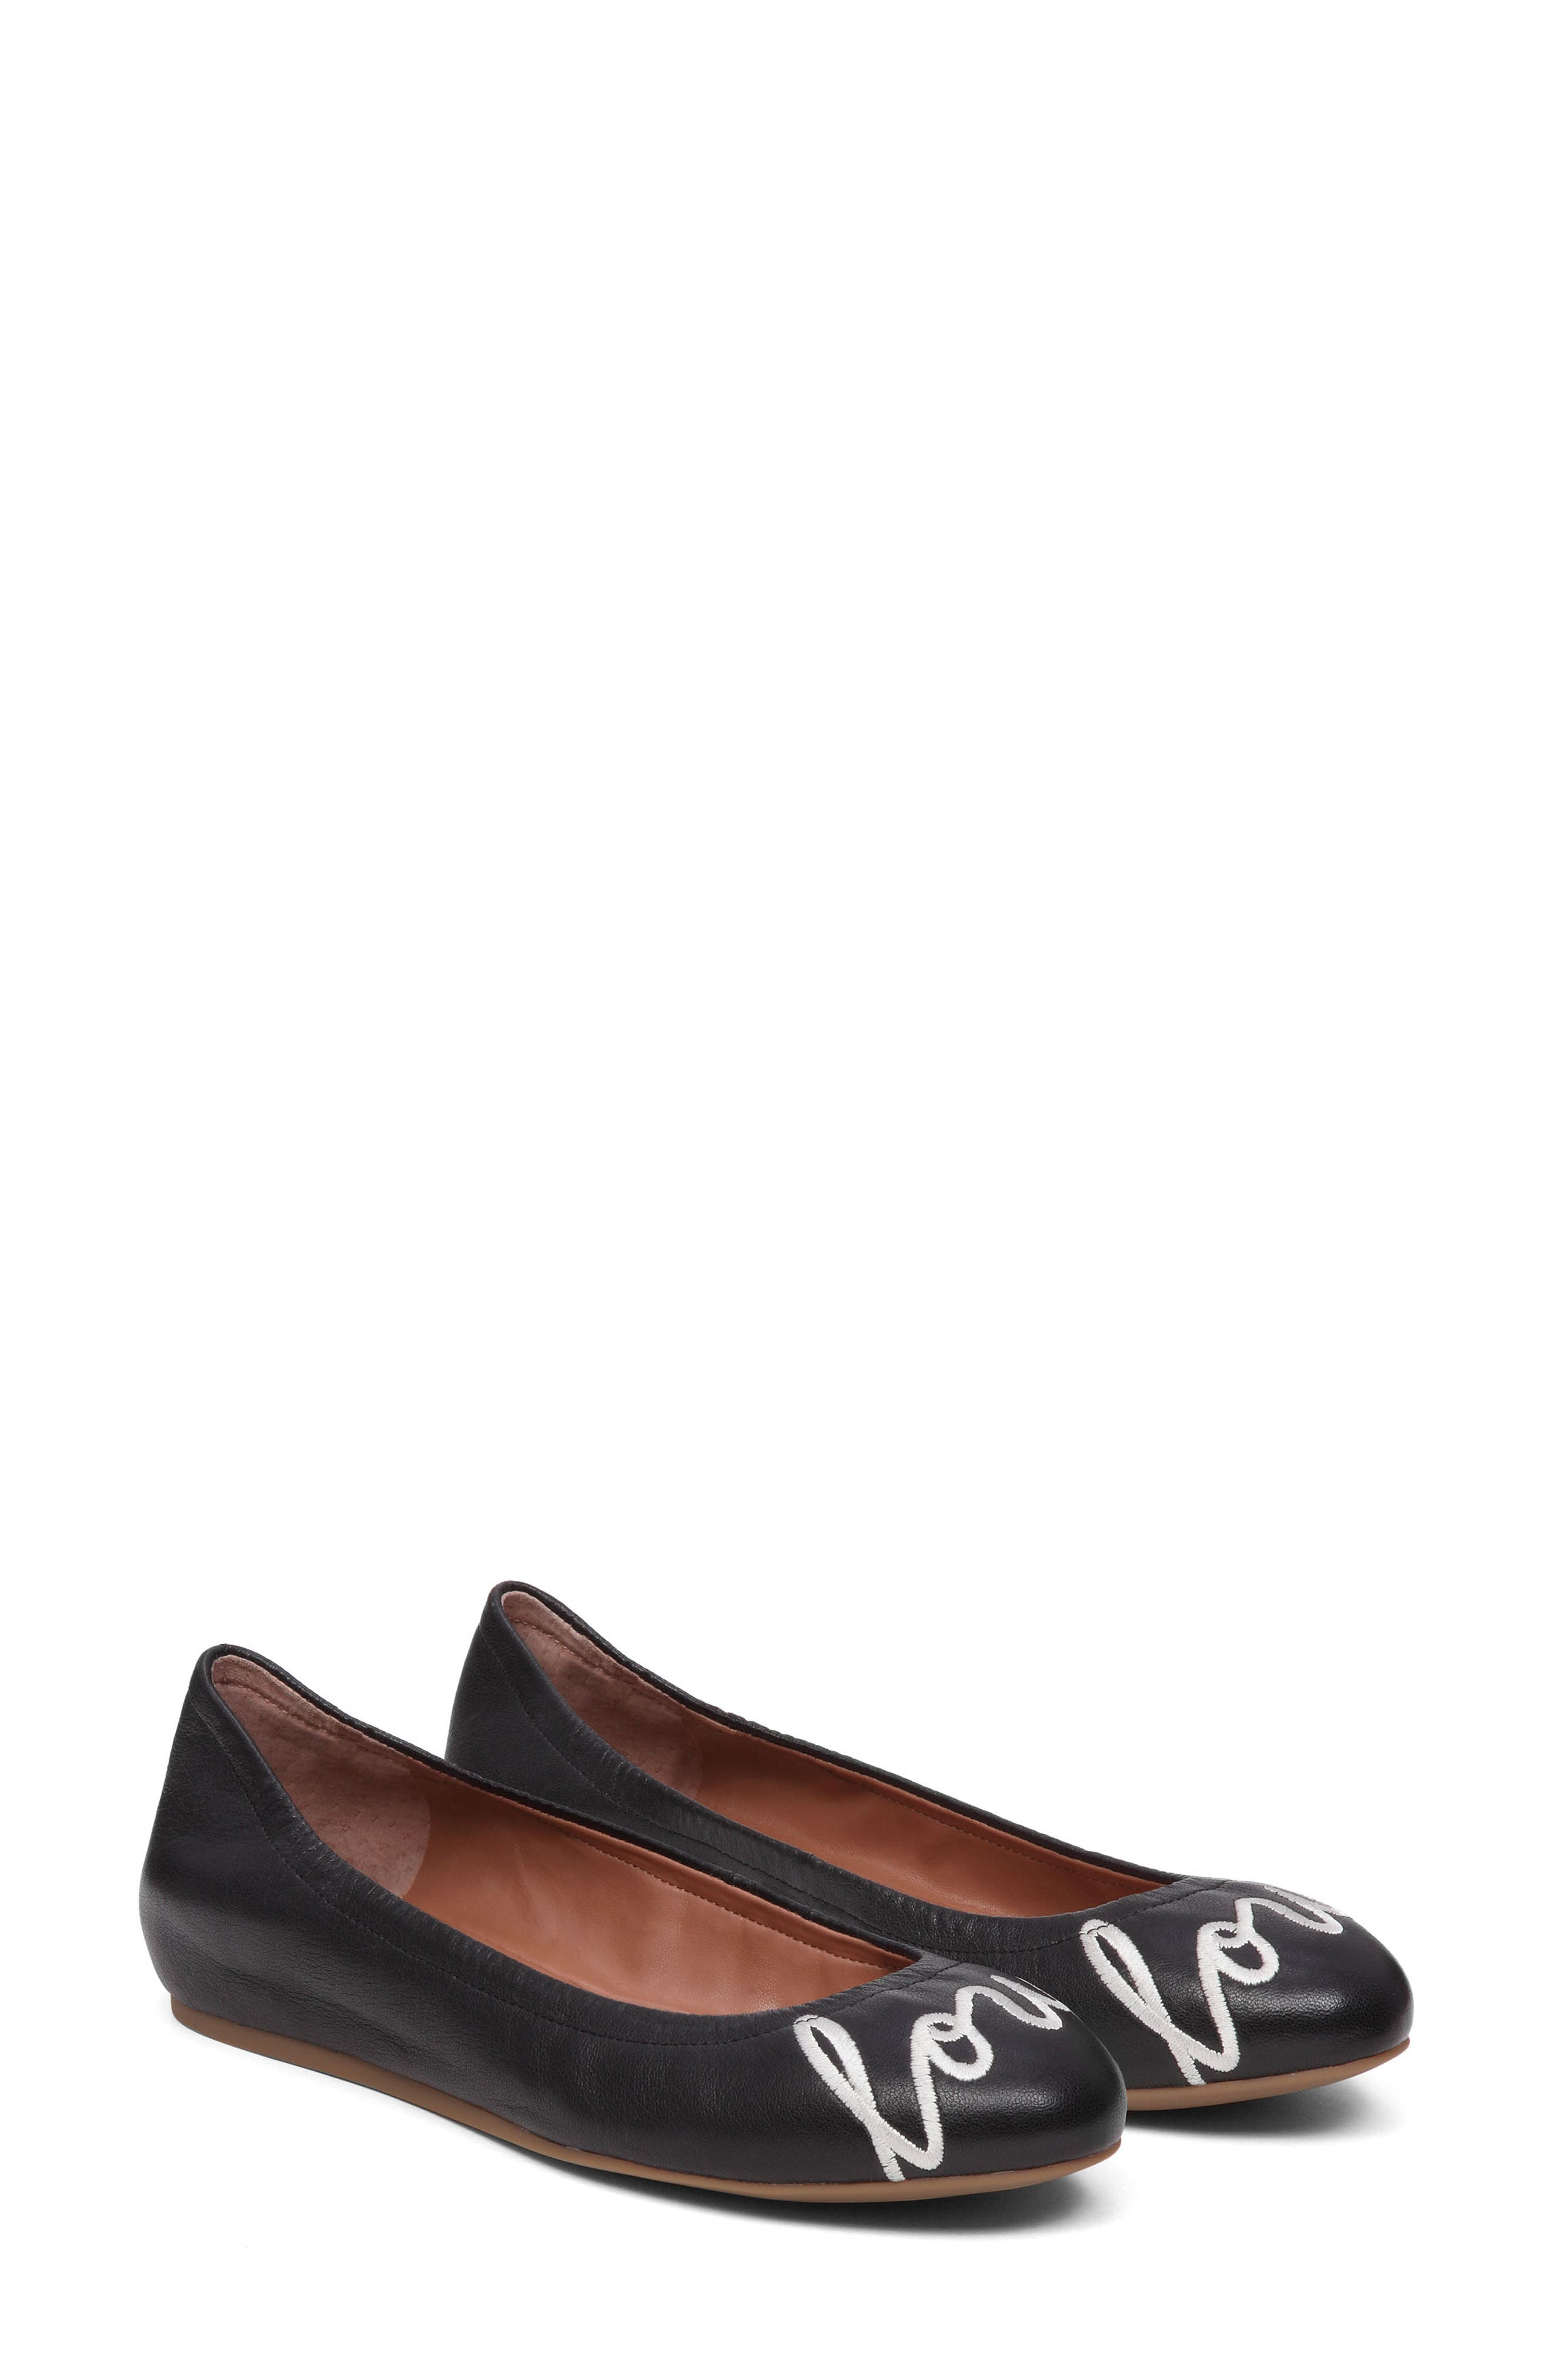 Donna ED Shoes Ellen Degeneres Shoes ED   Nordstrom 7b391d